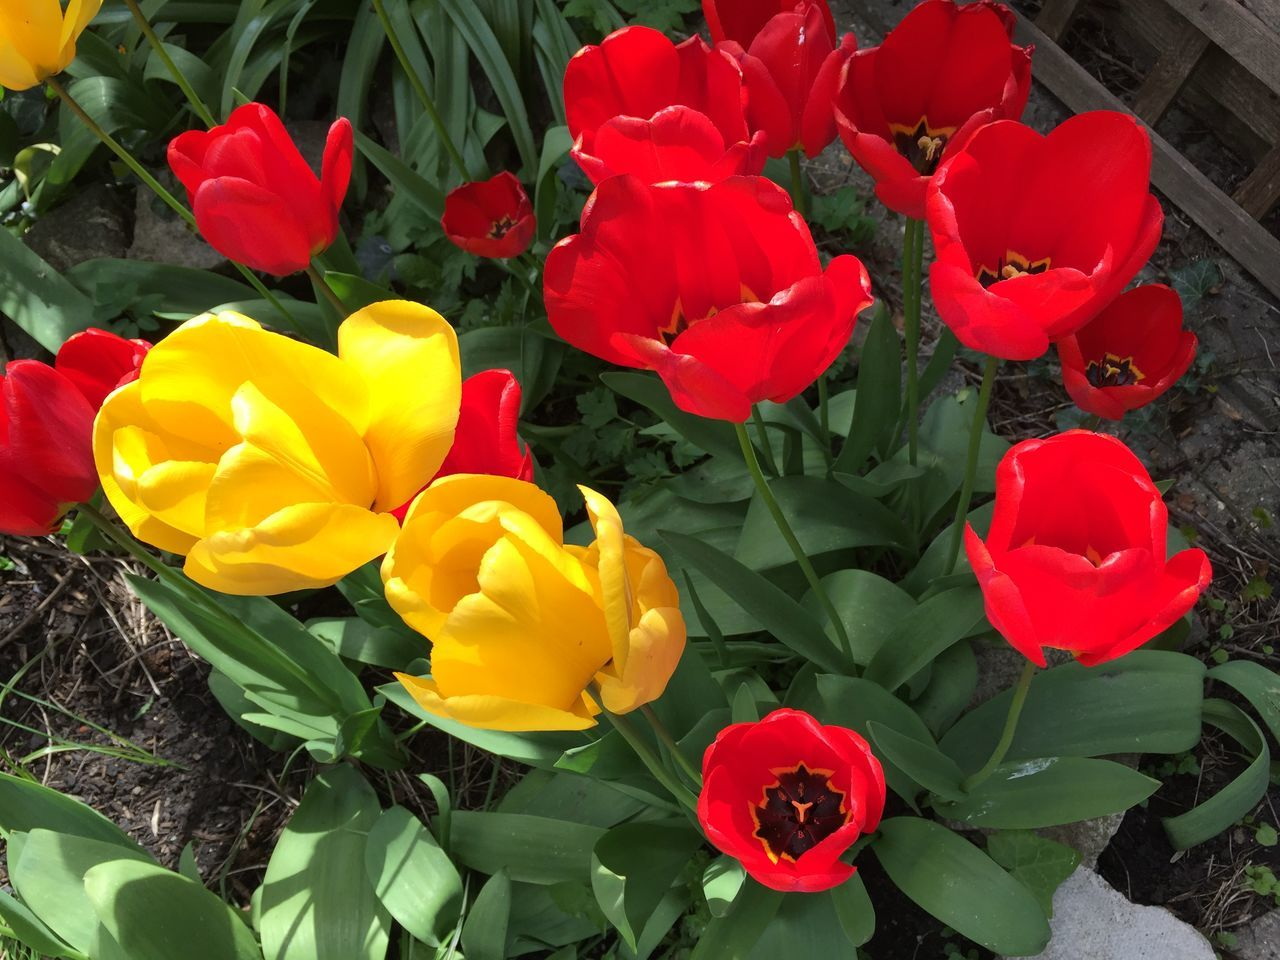 Wild tulips Beauty In Nature Blooming Blossom Flowers Garden Nature Nature Petal Plant Tulips